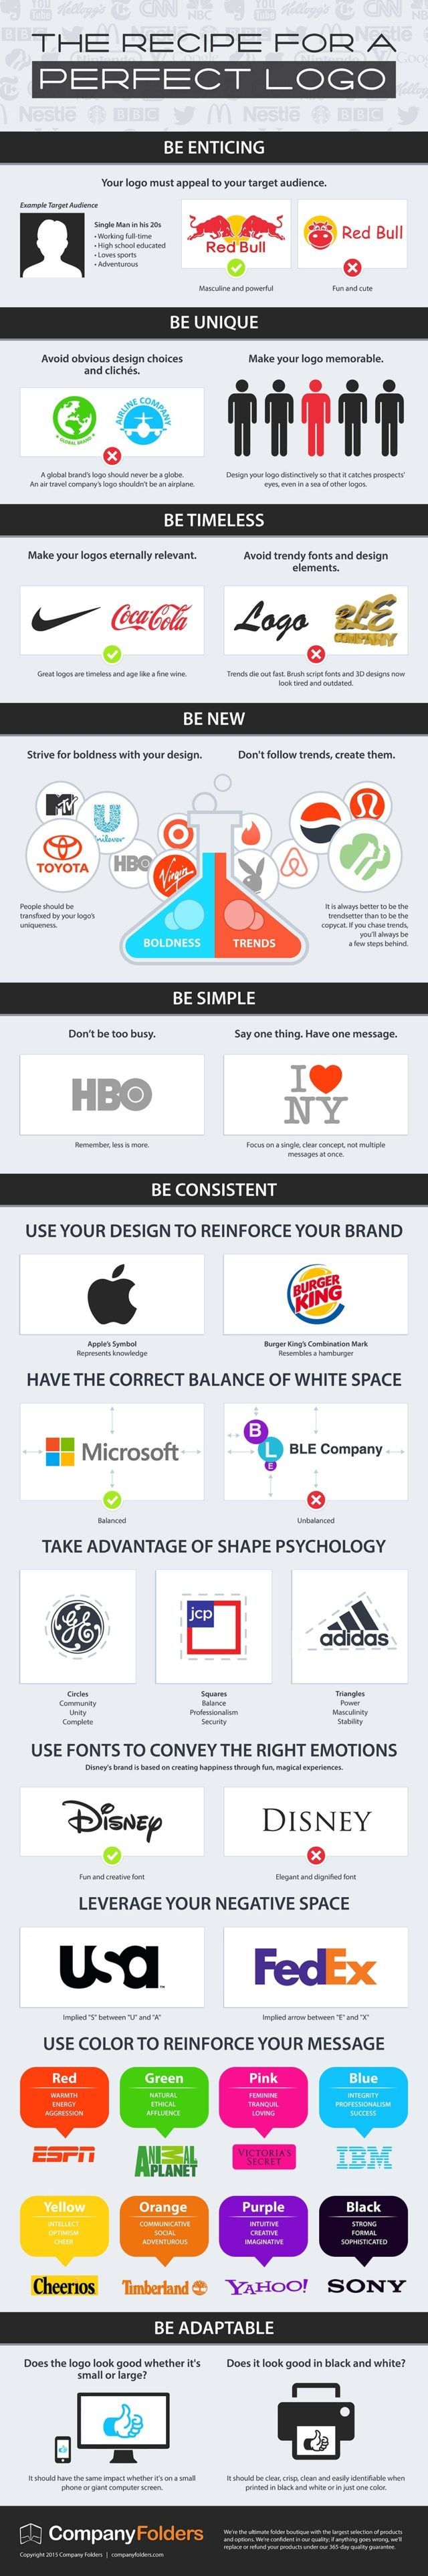 How to Design a Perfect Logo